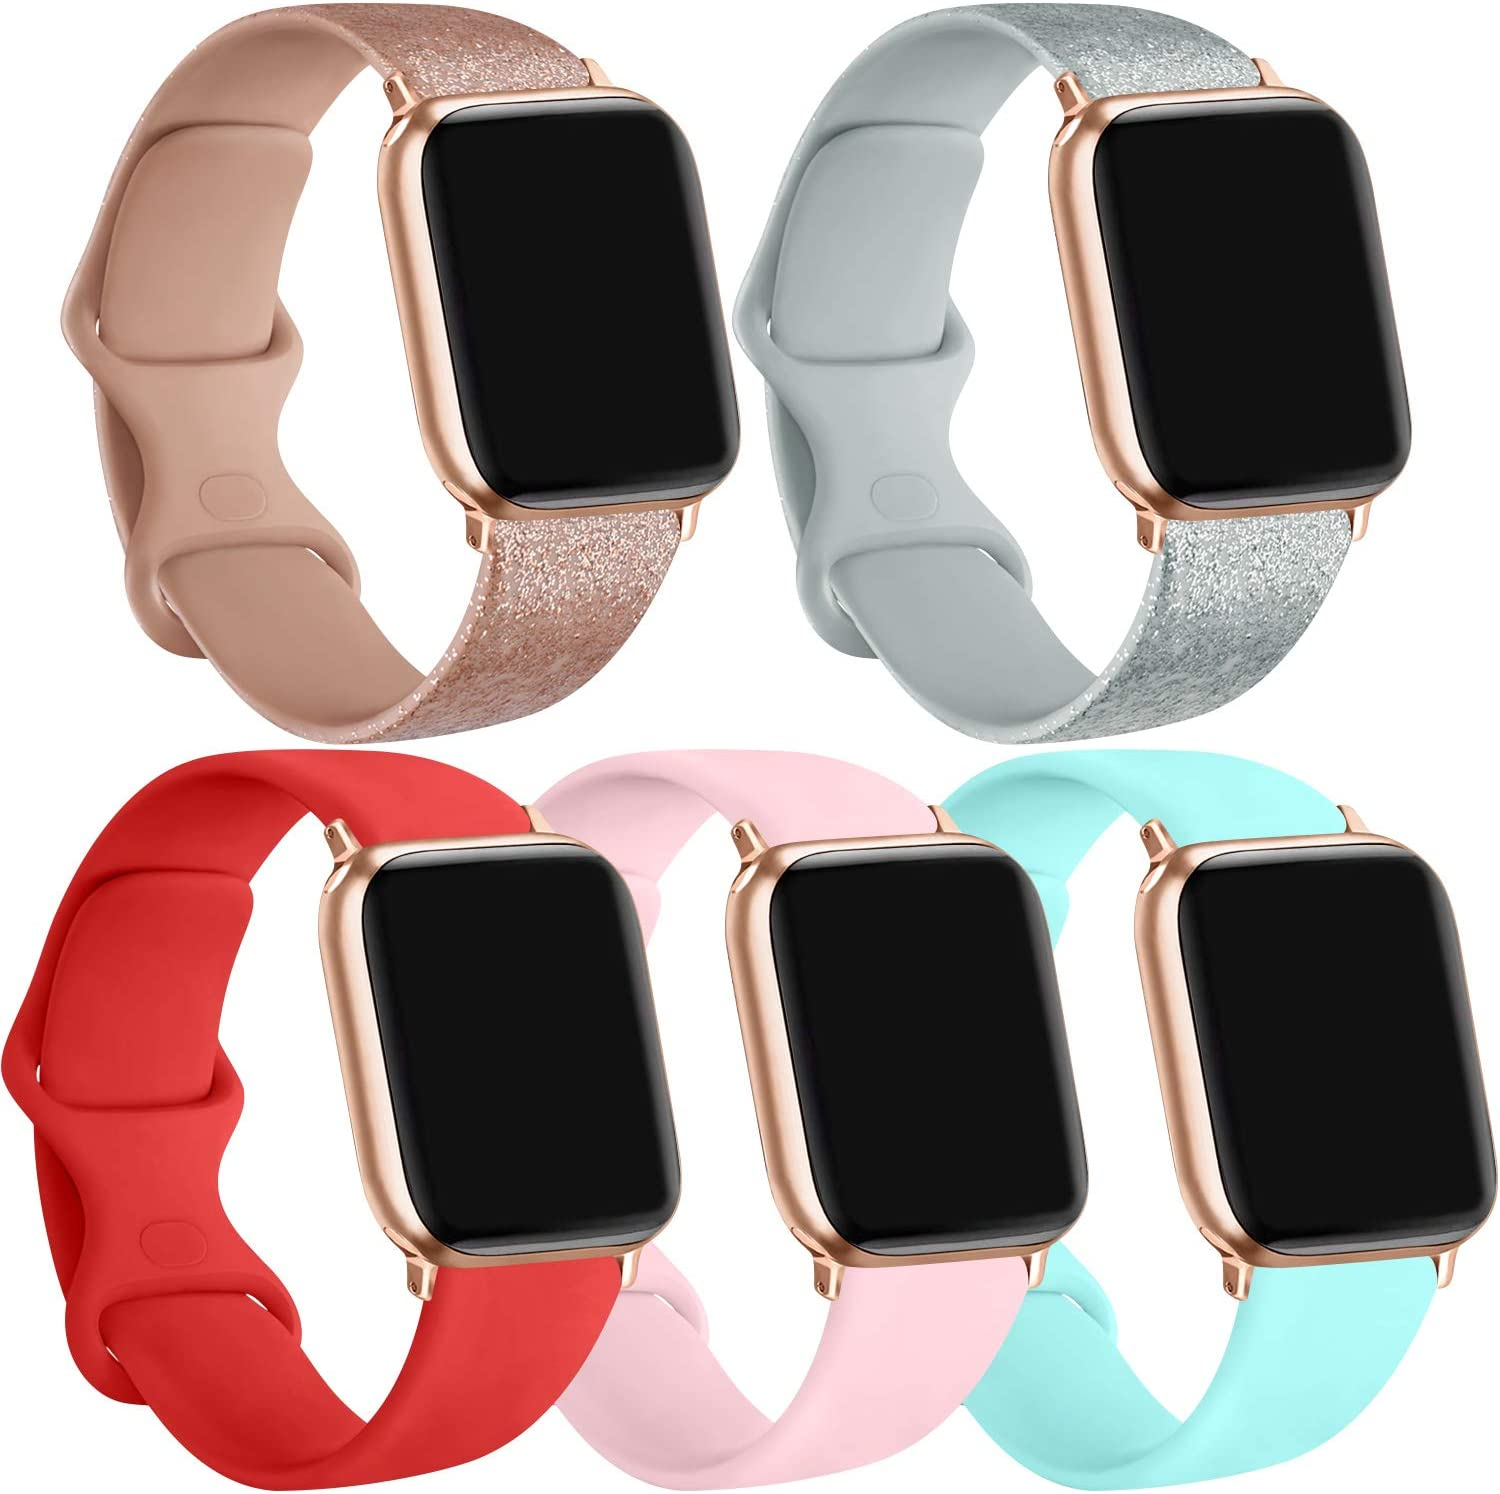 [5 Pack] Silicone Bands Compatible for Apple Watch Bands 38mm 40mm, Sport Band Compatible for iWatch Series 6 5 4 3 SE(Light Blue/Shine Rosegold/Shine Silver/Orange red/Pink, 38mm/40mm-S/M)